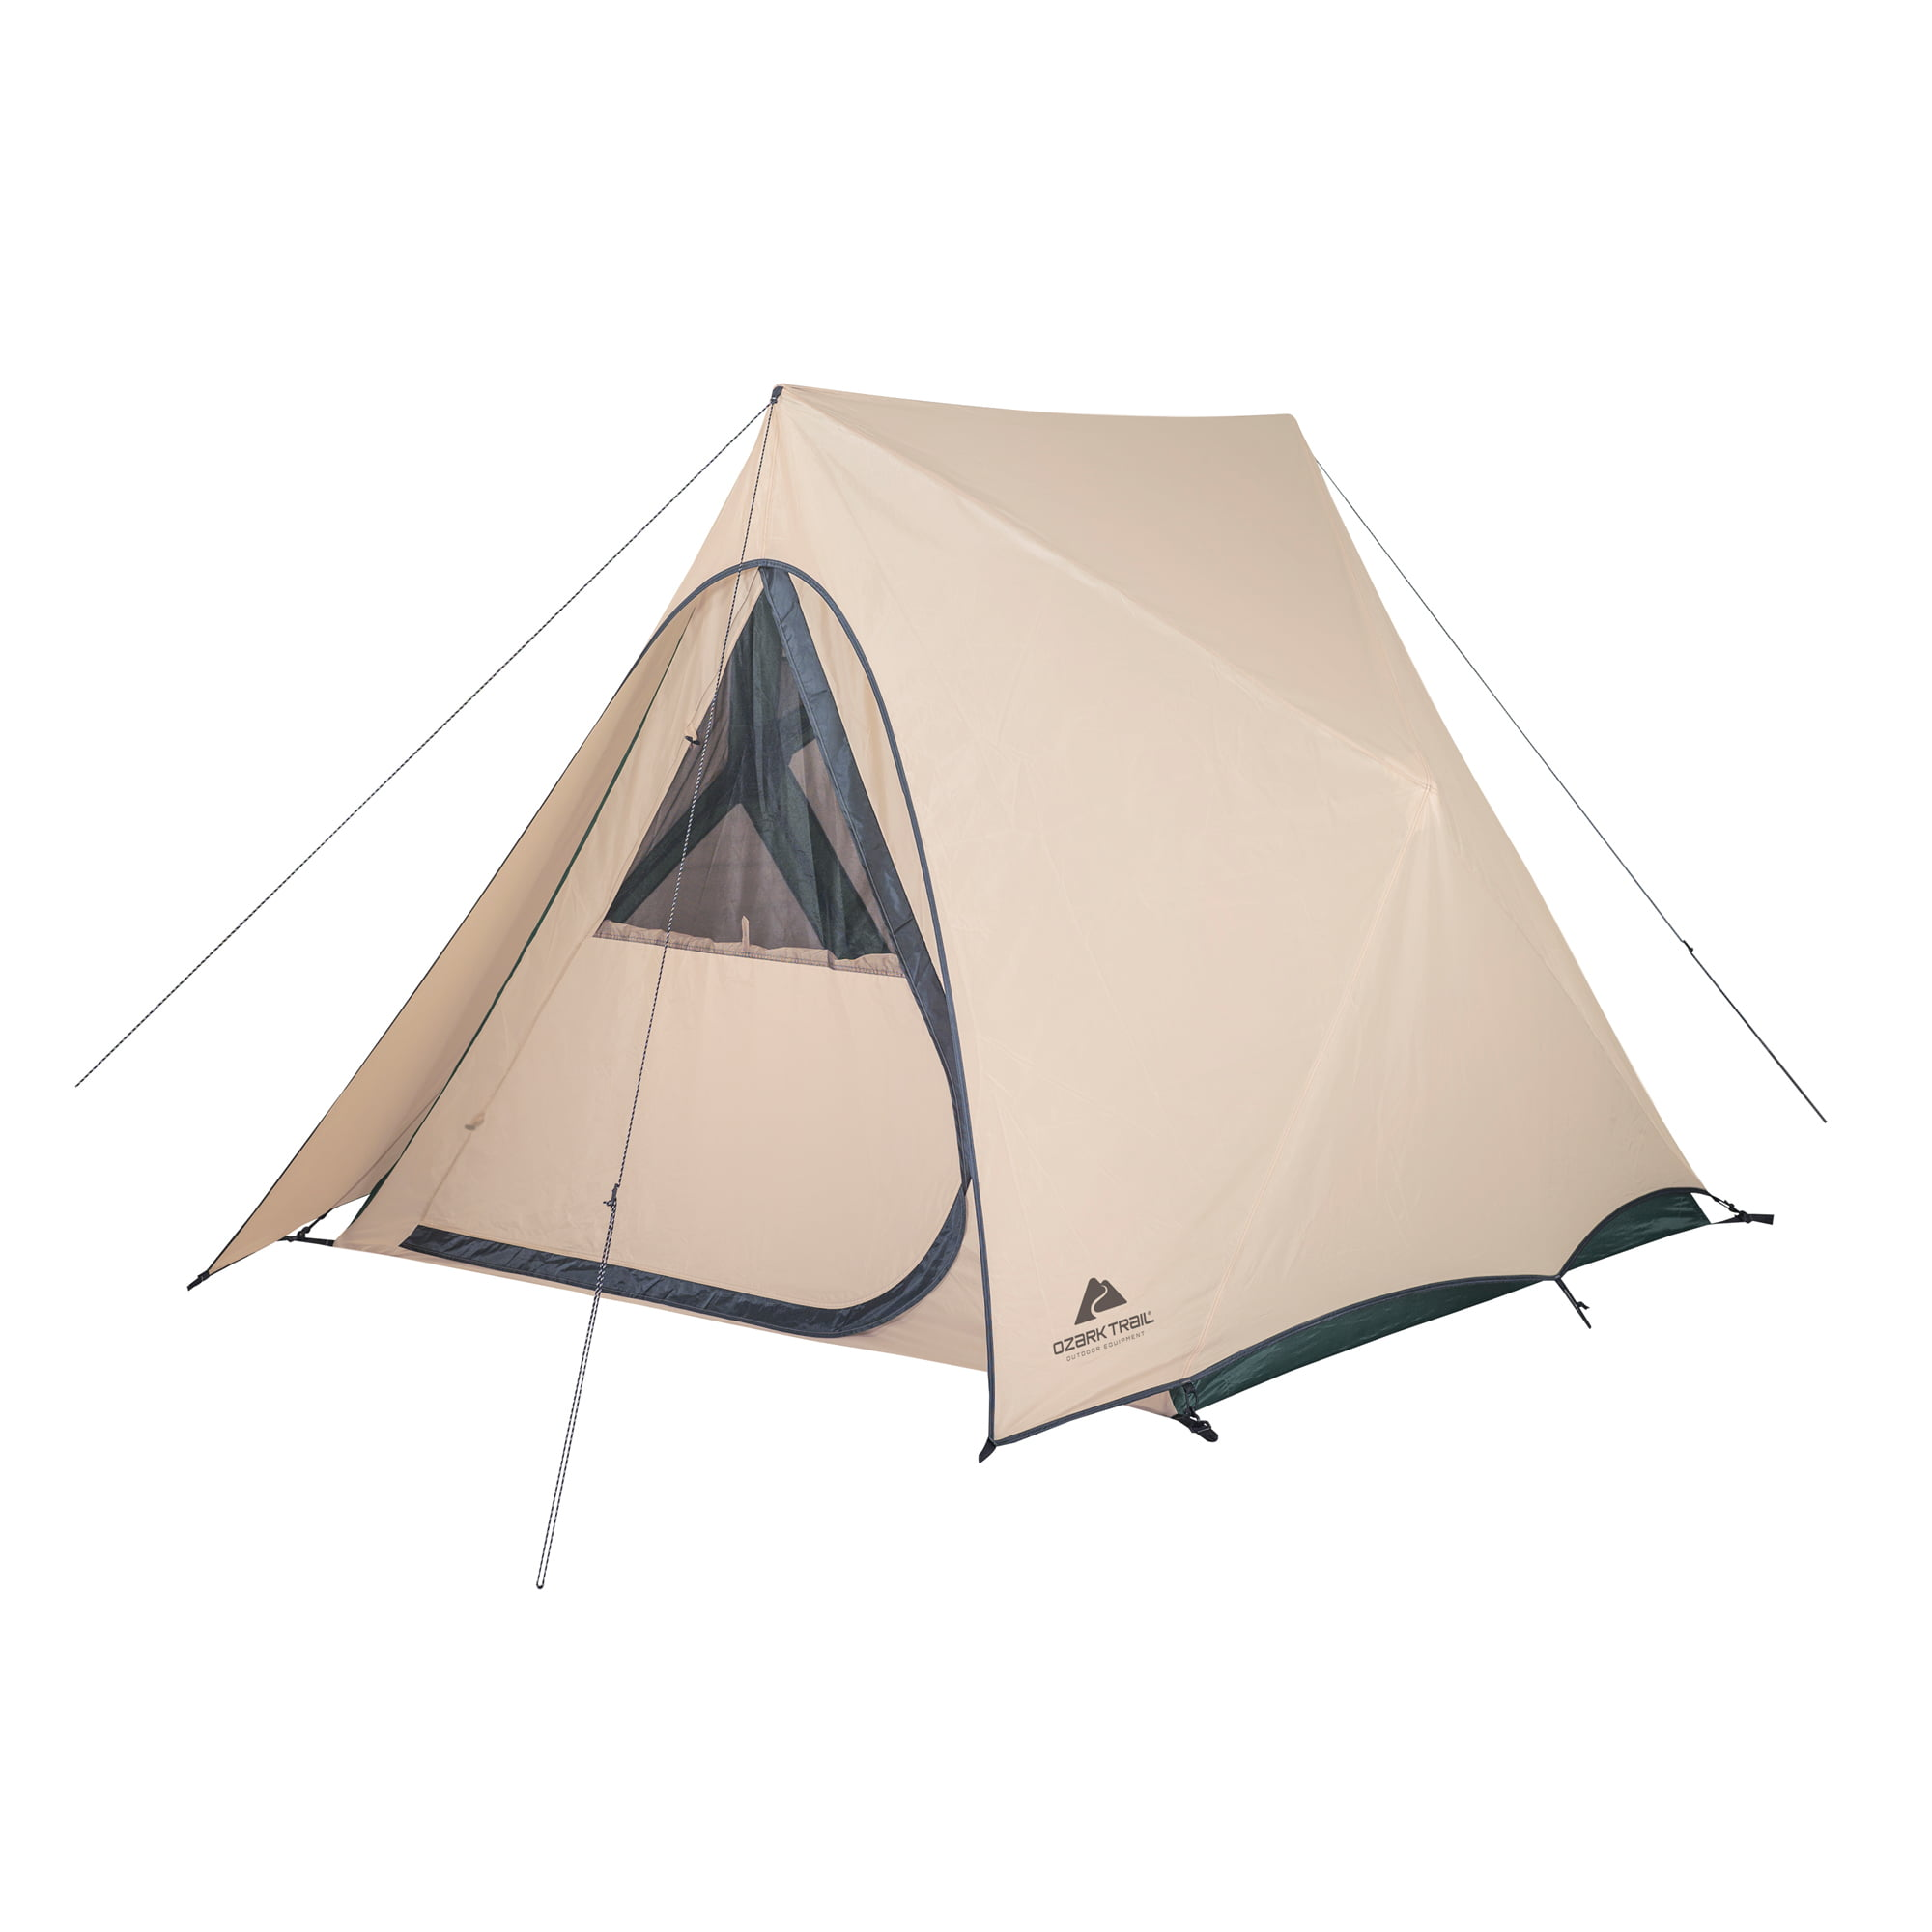 Ozark Trail 3-Person Pop-Out A-Frame Camping Tent by HKD GLOBAL LIMITED